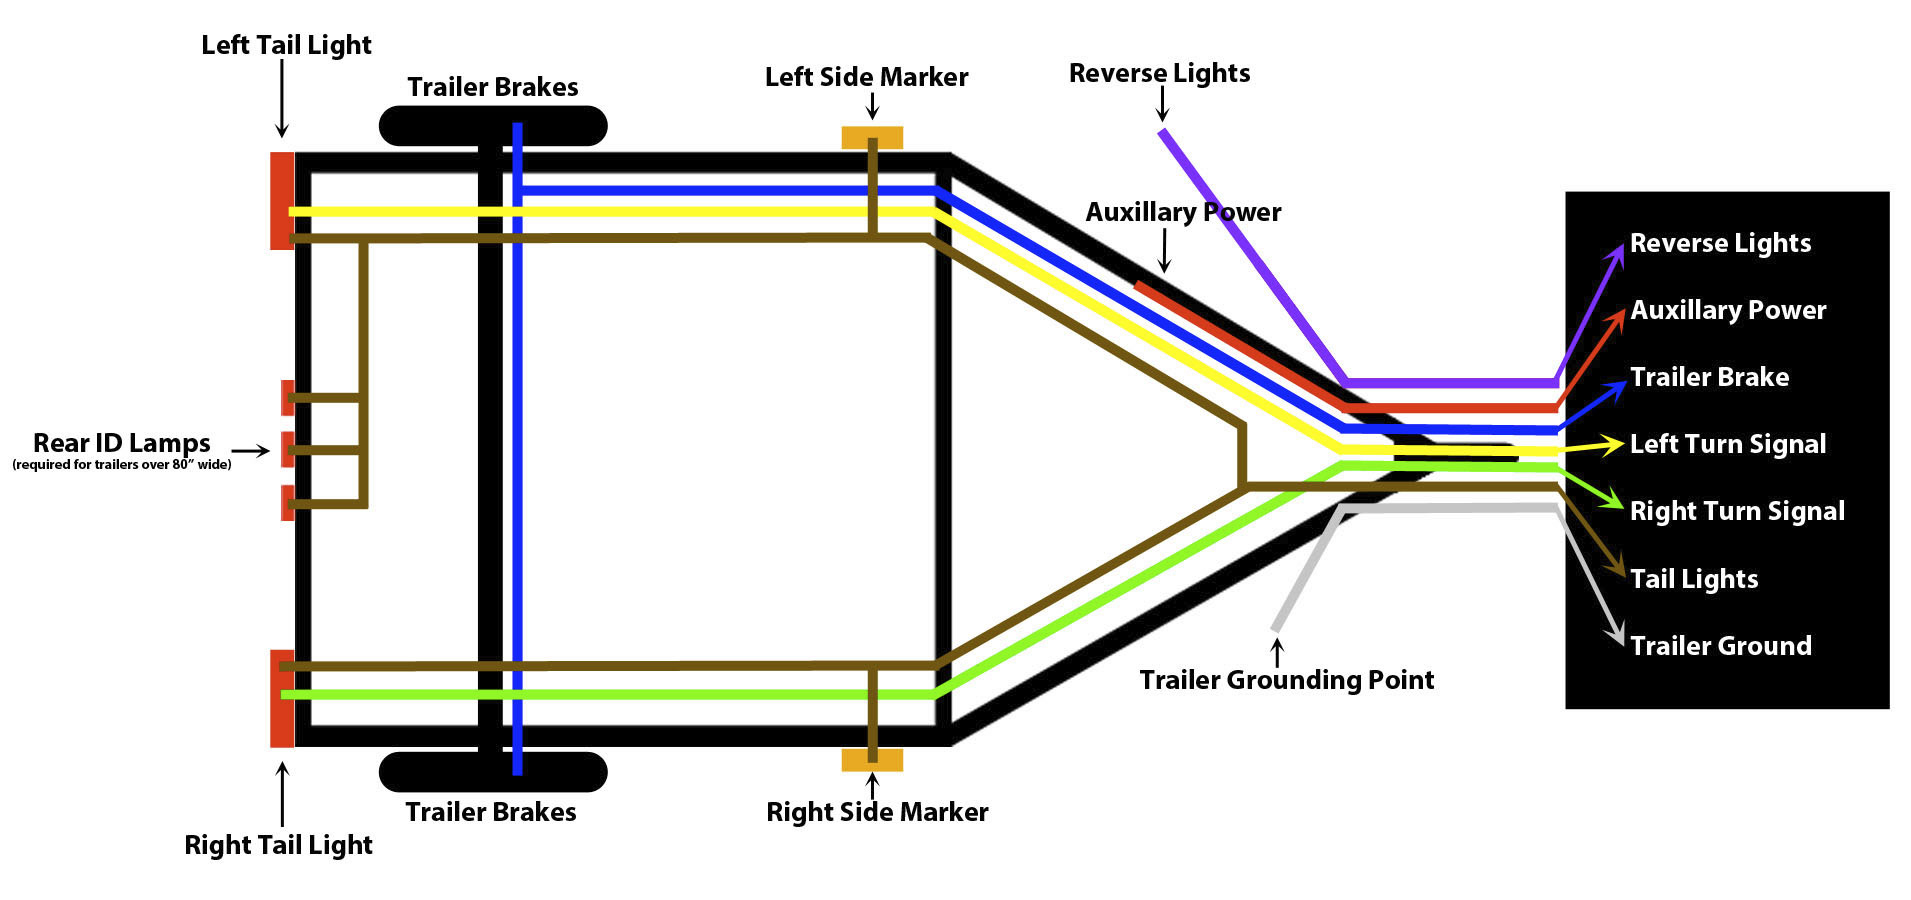 How To Wire Trailer Lights - Trailer Wiring Guide & Videos - 4 Wire Trailer Plug Wiring Diagram